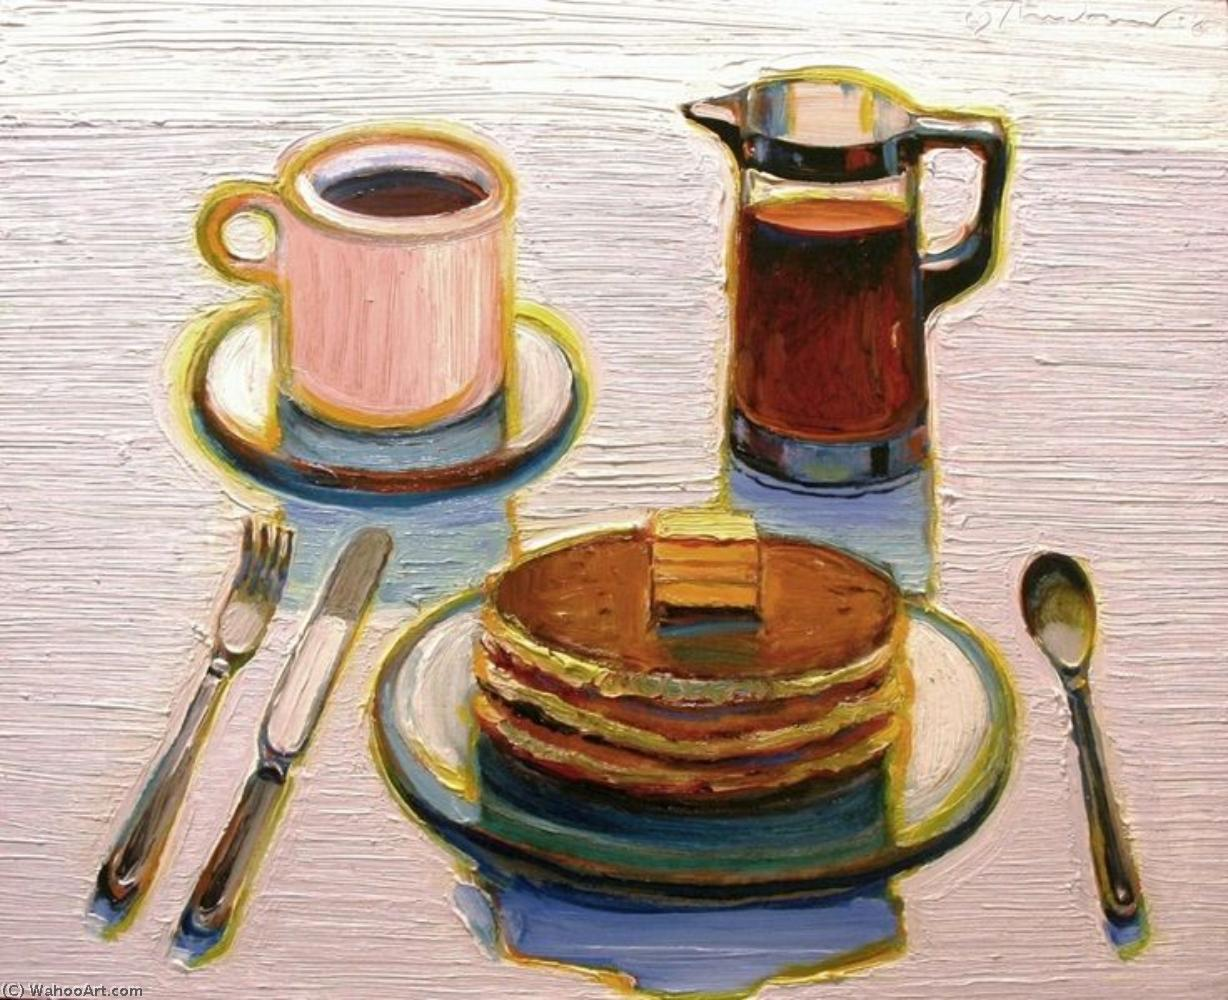 Wayne Thiebaud Most Famous Paintings